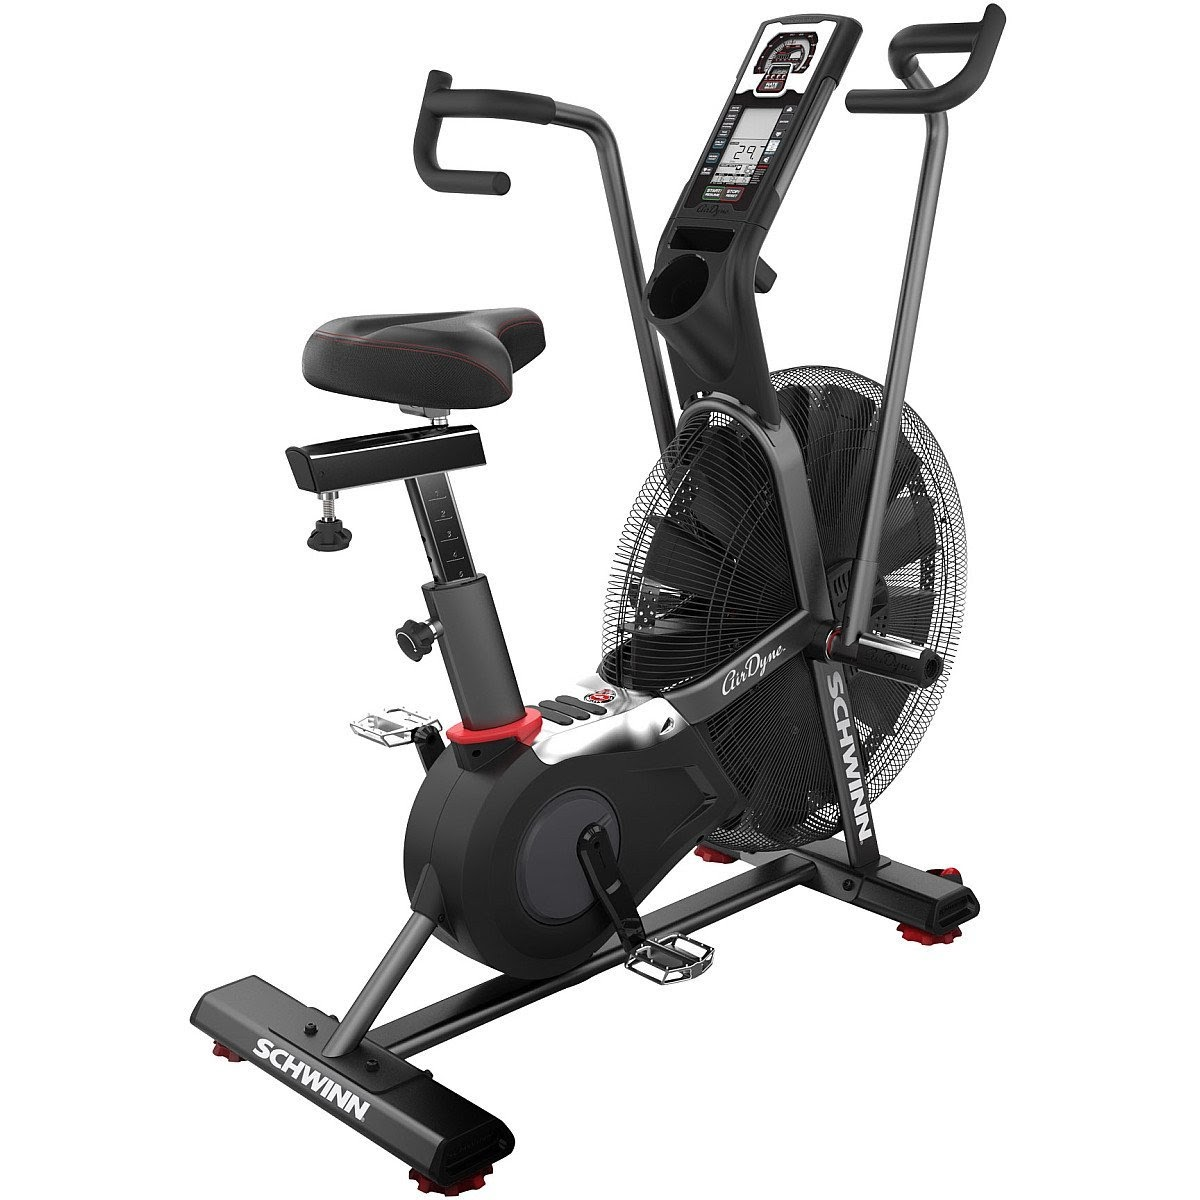 Home gym zone schwinn ad airdyne exercise bike review